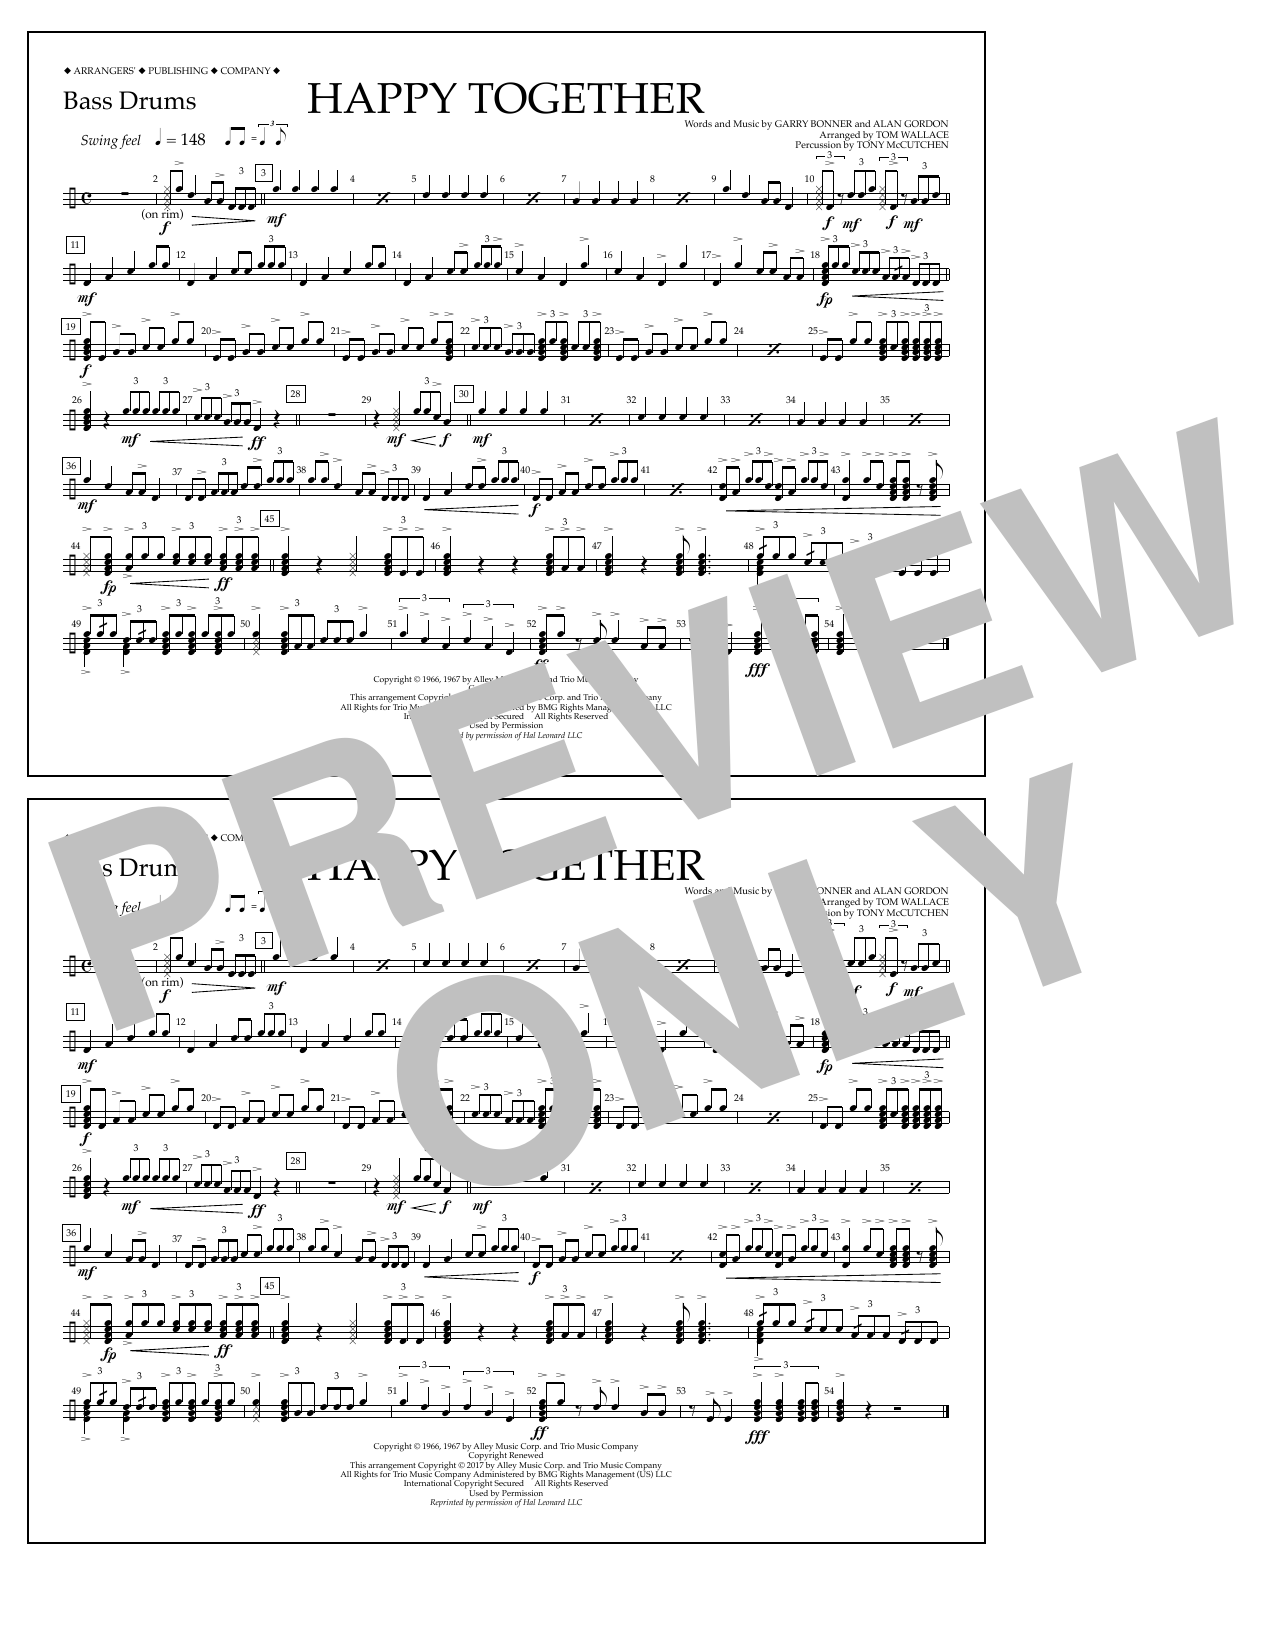 Happy Together - Bass Drums Sheet Music